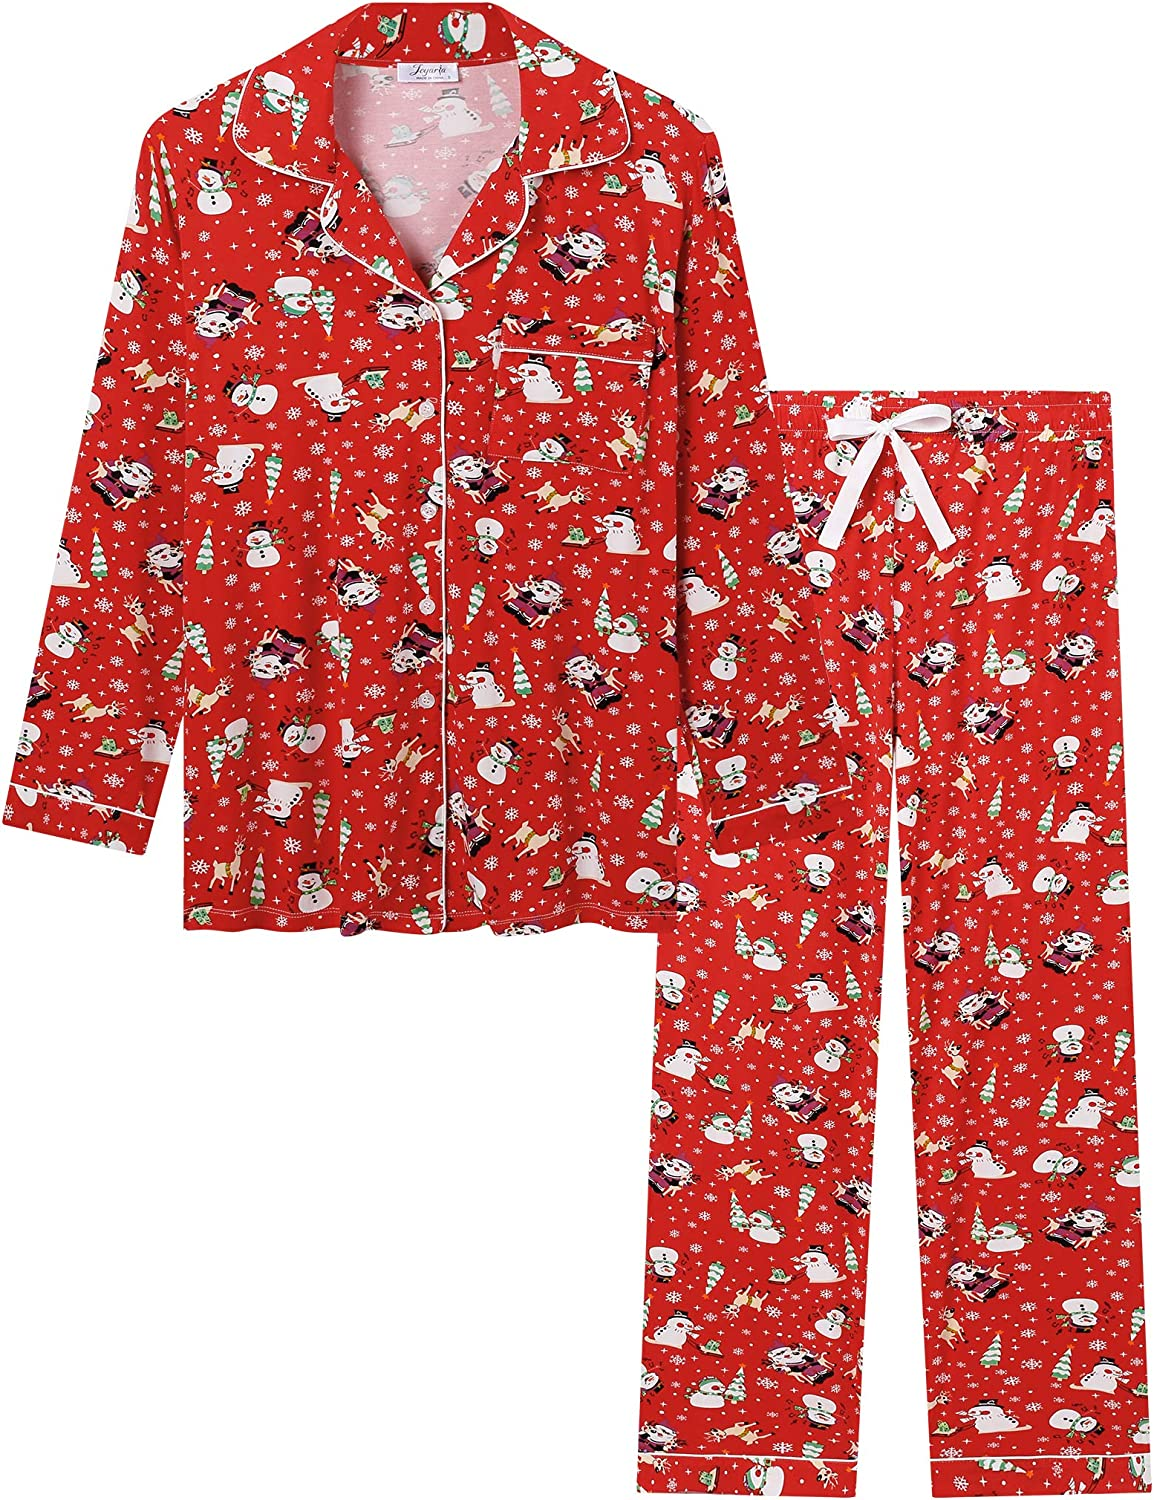 Joyaria Womens Soft Bamboo Pajama Sets Long Clearance SALE! Limited time! Purchase Button Sleeve Down P